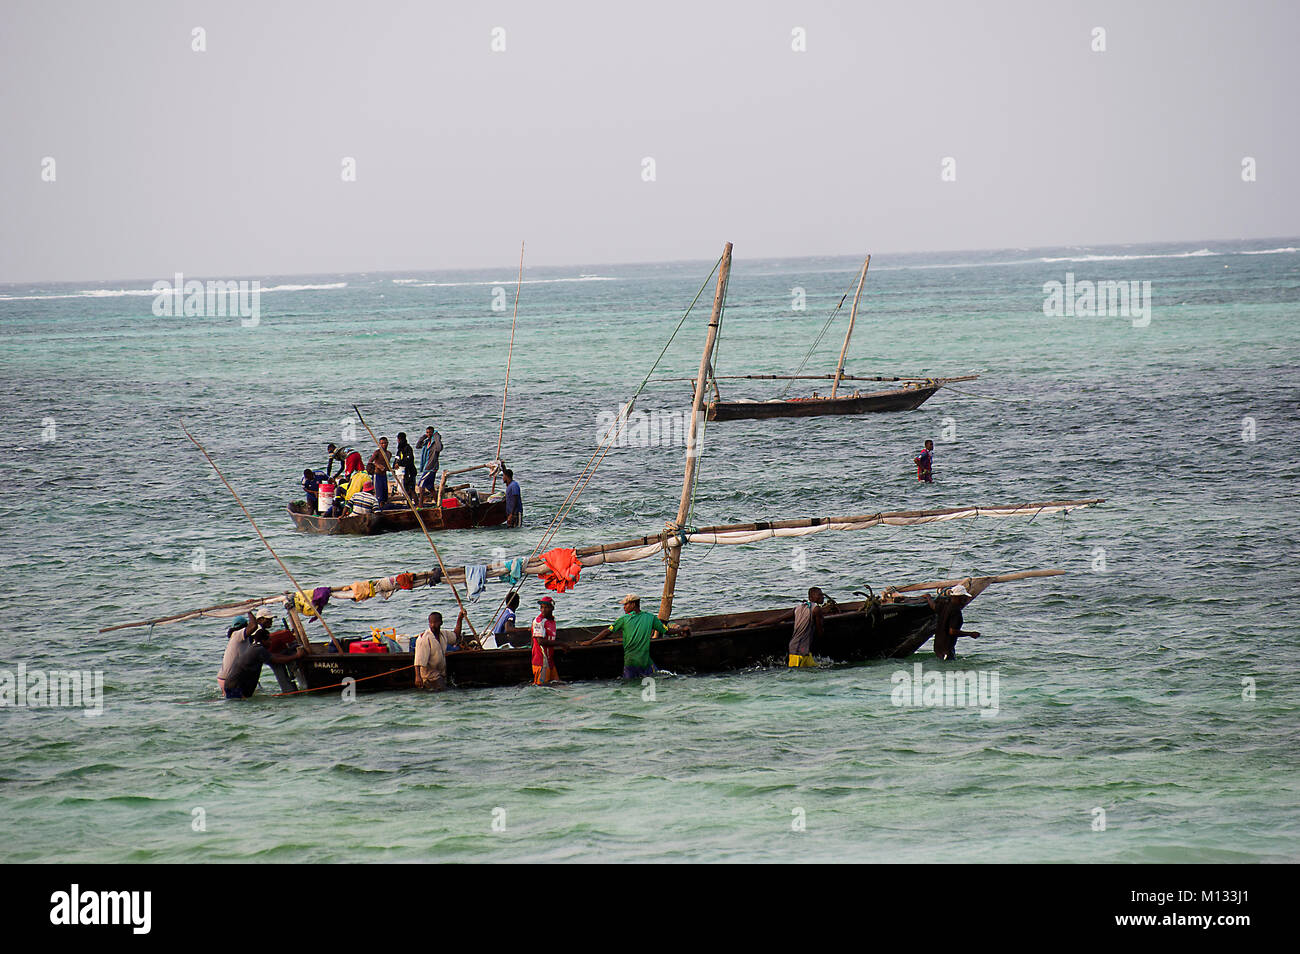 Fishermen going out to sea in traditional dhow boats in Nungwi on the island of Zanzibar with turquoise waters of - Stock Image